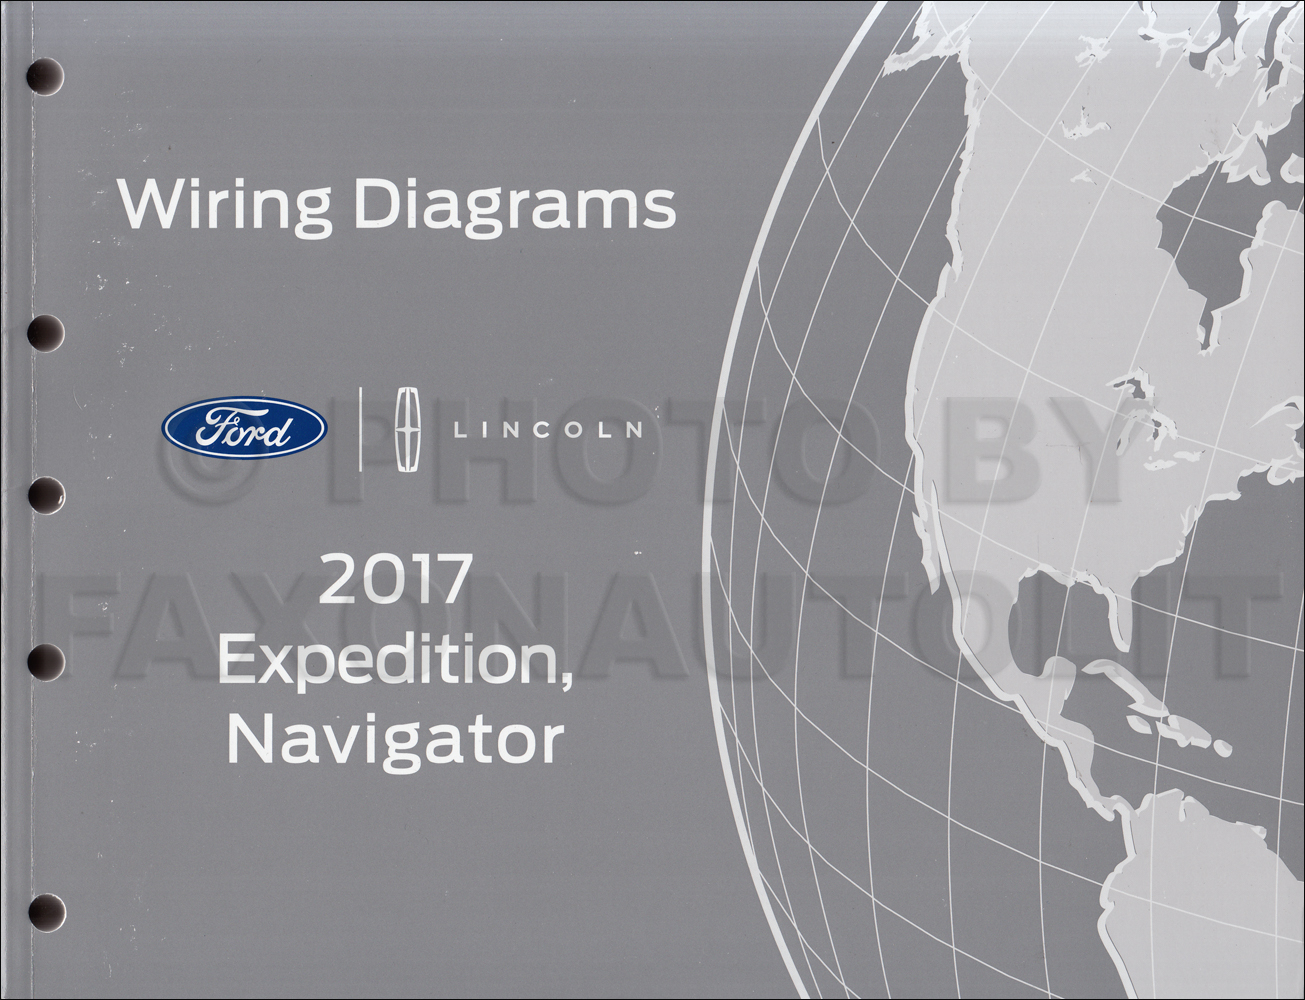 2017 Ford Expedition Lincoln Navigator Wiring Diagram